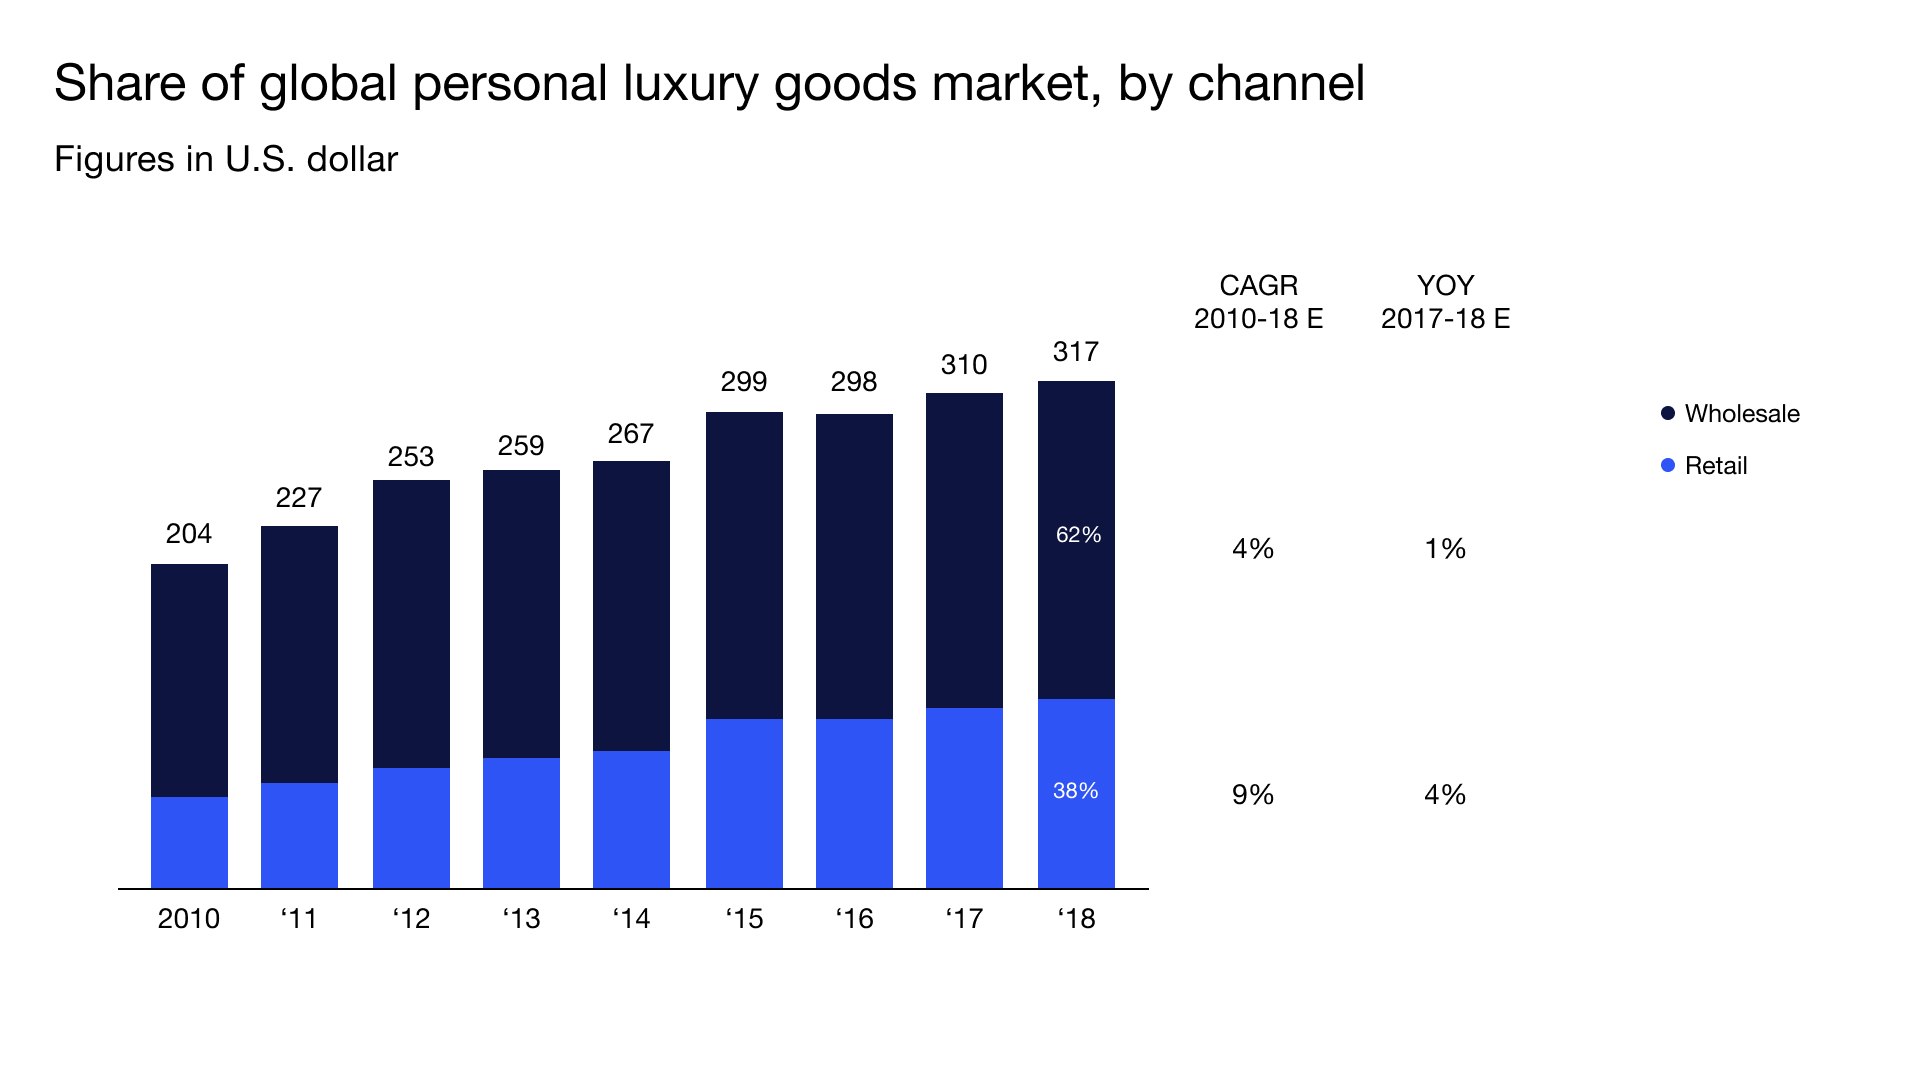 G & Co. Digital Experience Agency & Consulting Firm, Global Fashion Industry Index, Fashion Industry Analysis, Fashion Market Report, Fashion Industry Insights, Fashion Industry Trends, Fashion CMO Surveys, Fashion Executives